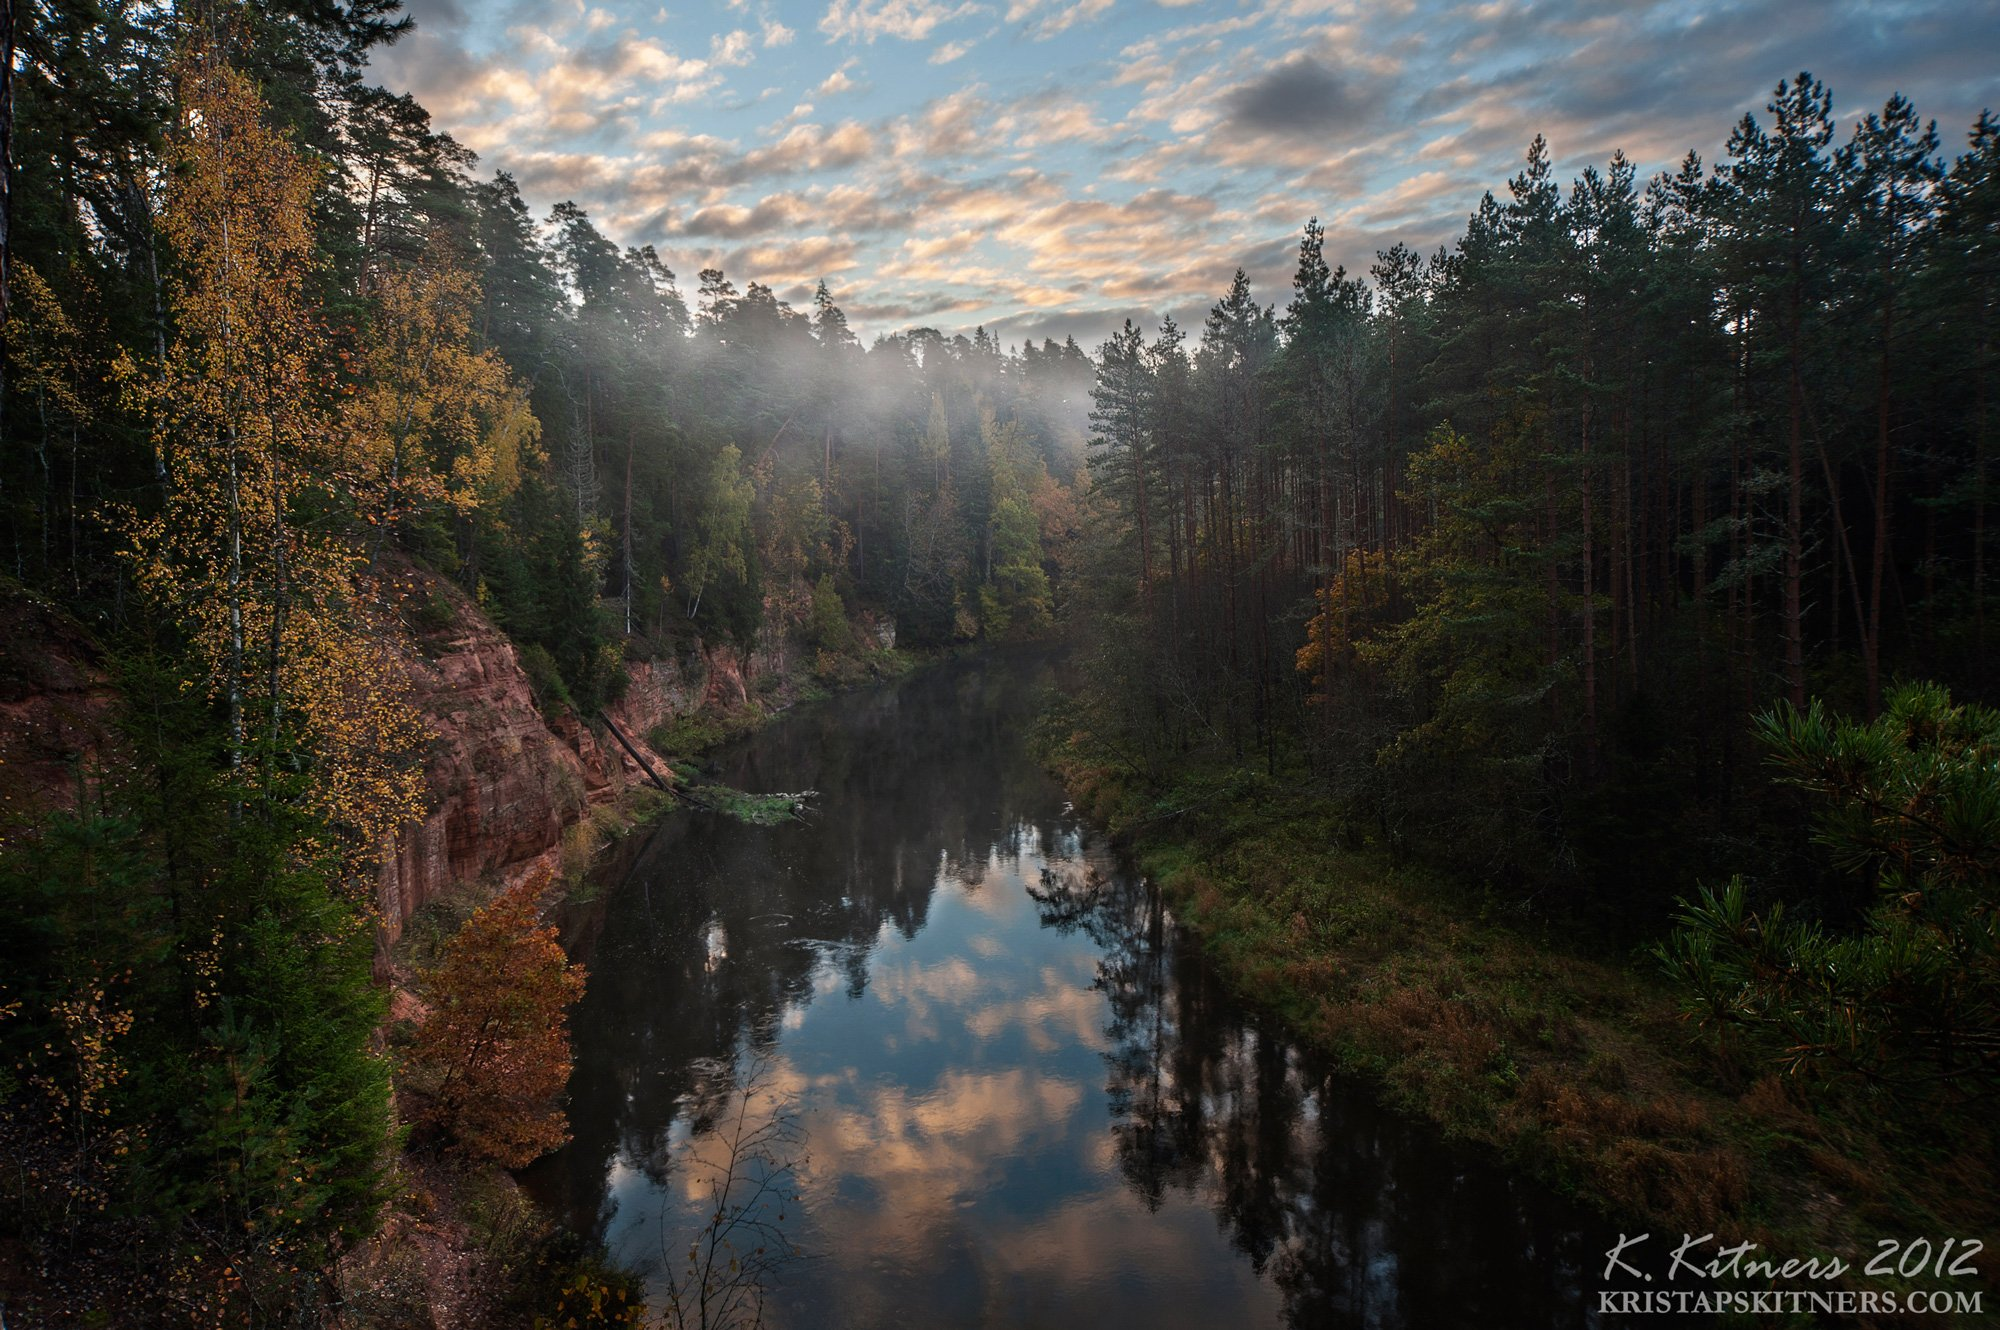 river cliff reflection autumn forest tree leaf fog morning sky clouds, Kristaps Kitners